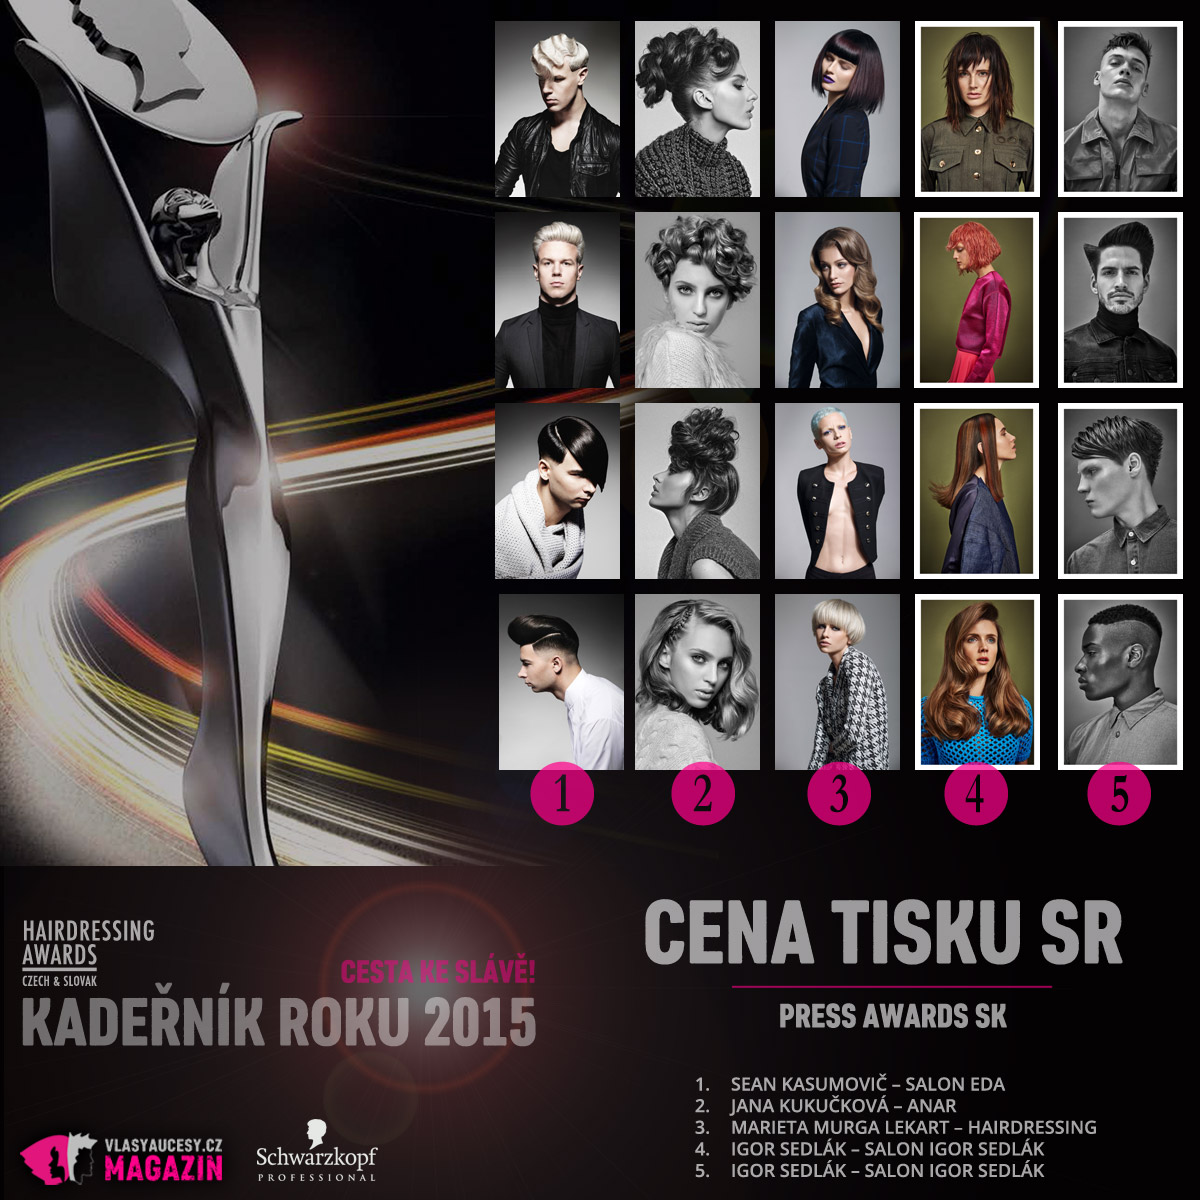 Czech&Slovak Hairdressing Awards 2015 – kategorie Cena tisku SR / Press Award SK (Sean Kasumovič – Salon EDA, Jana Kukučková – Anar, Marieta Murga Lekart – Hairdressing, Igor Sedlák – Salon Igor Sedlák, Igor Sedlák – Salon Igor Sedlák).